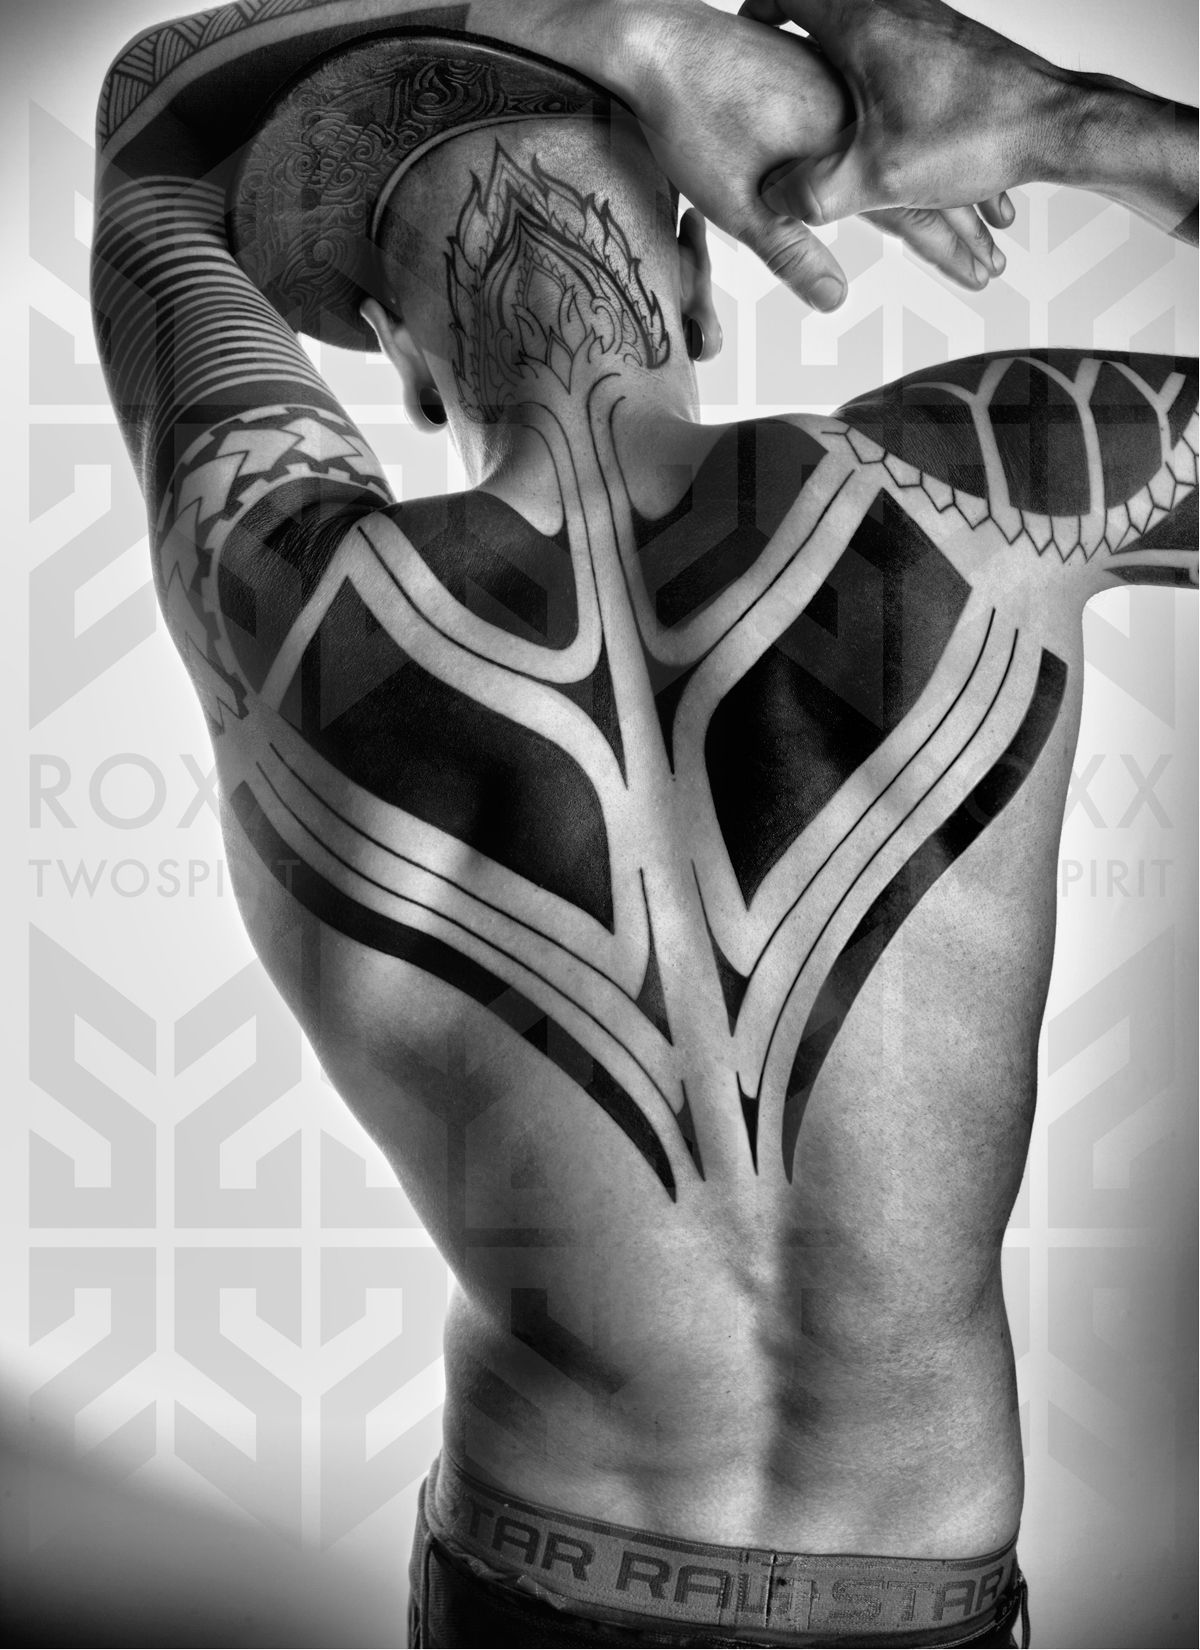 Tattoo by Roxx TwoSpirit - this is who does my SF tattoos. the best.